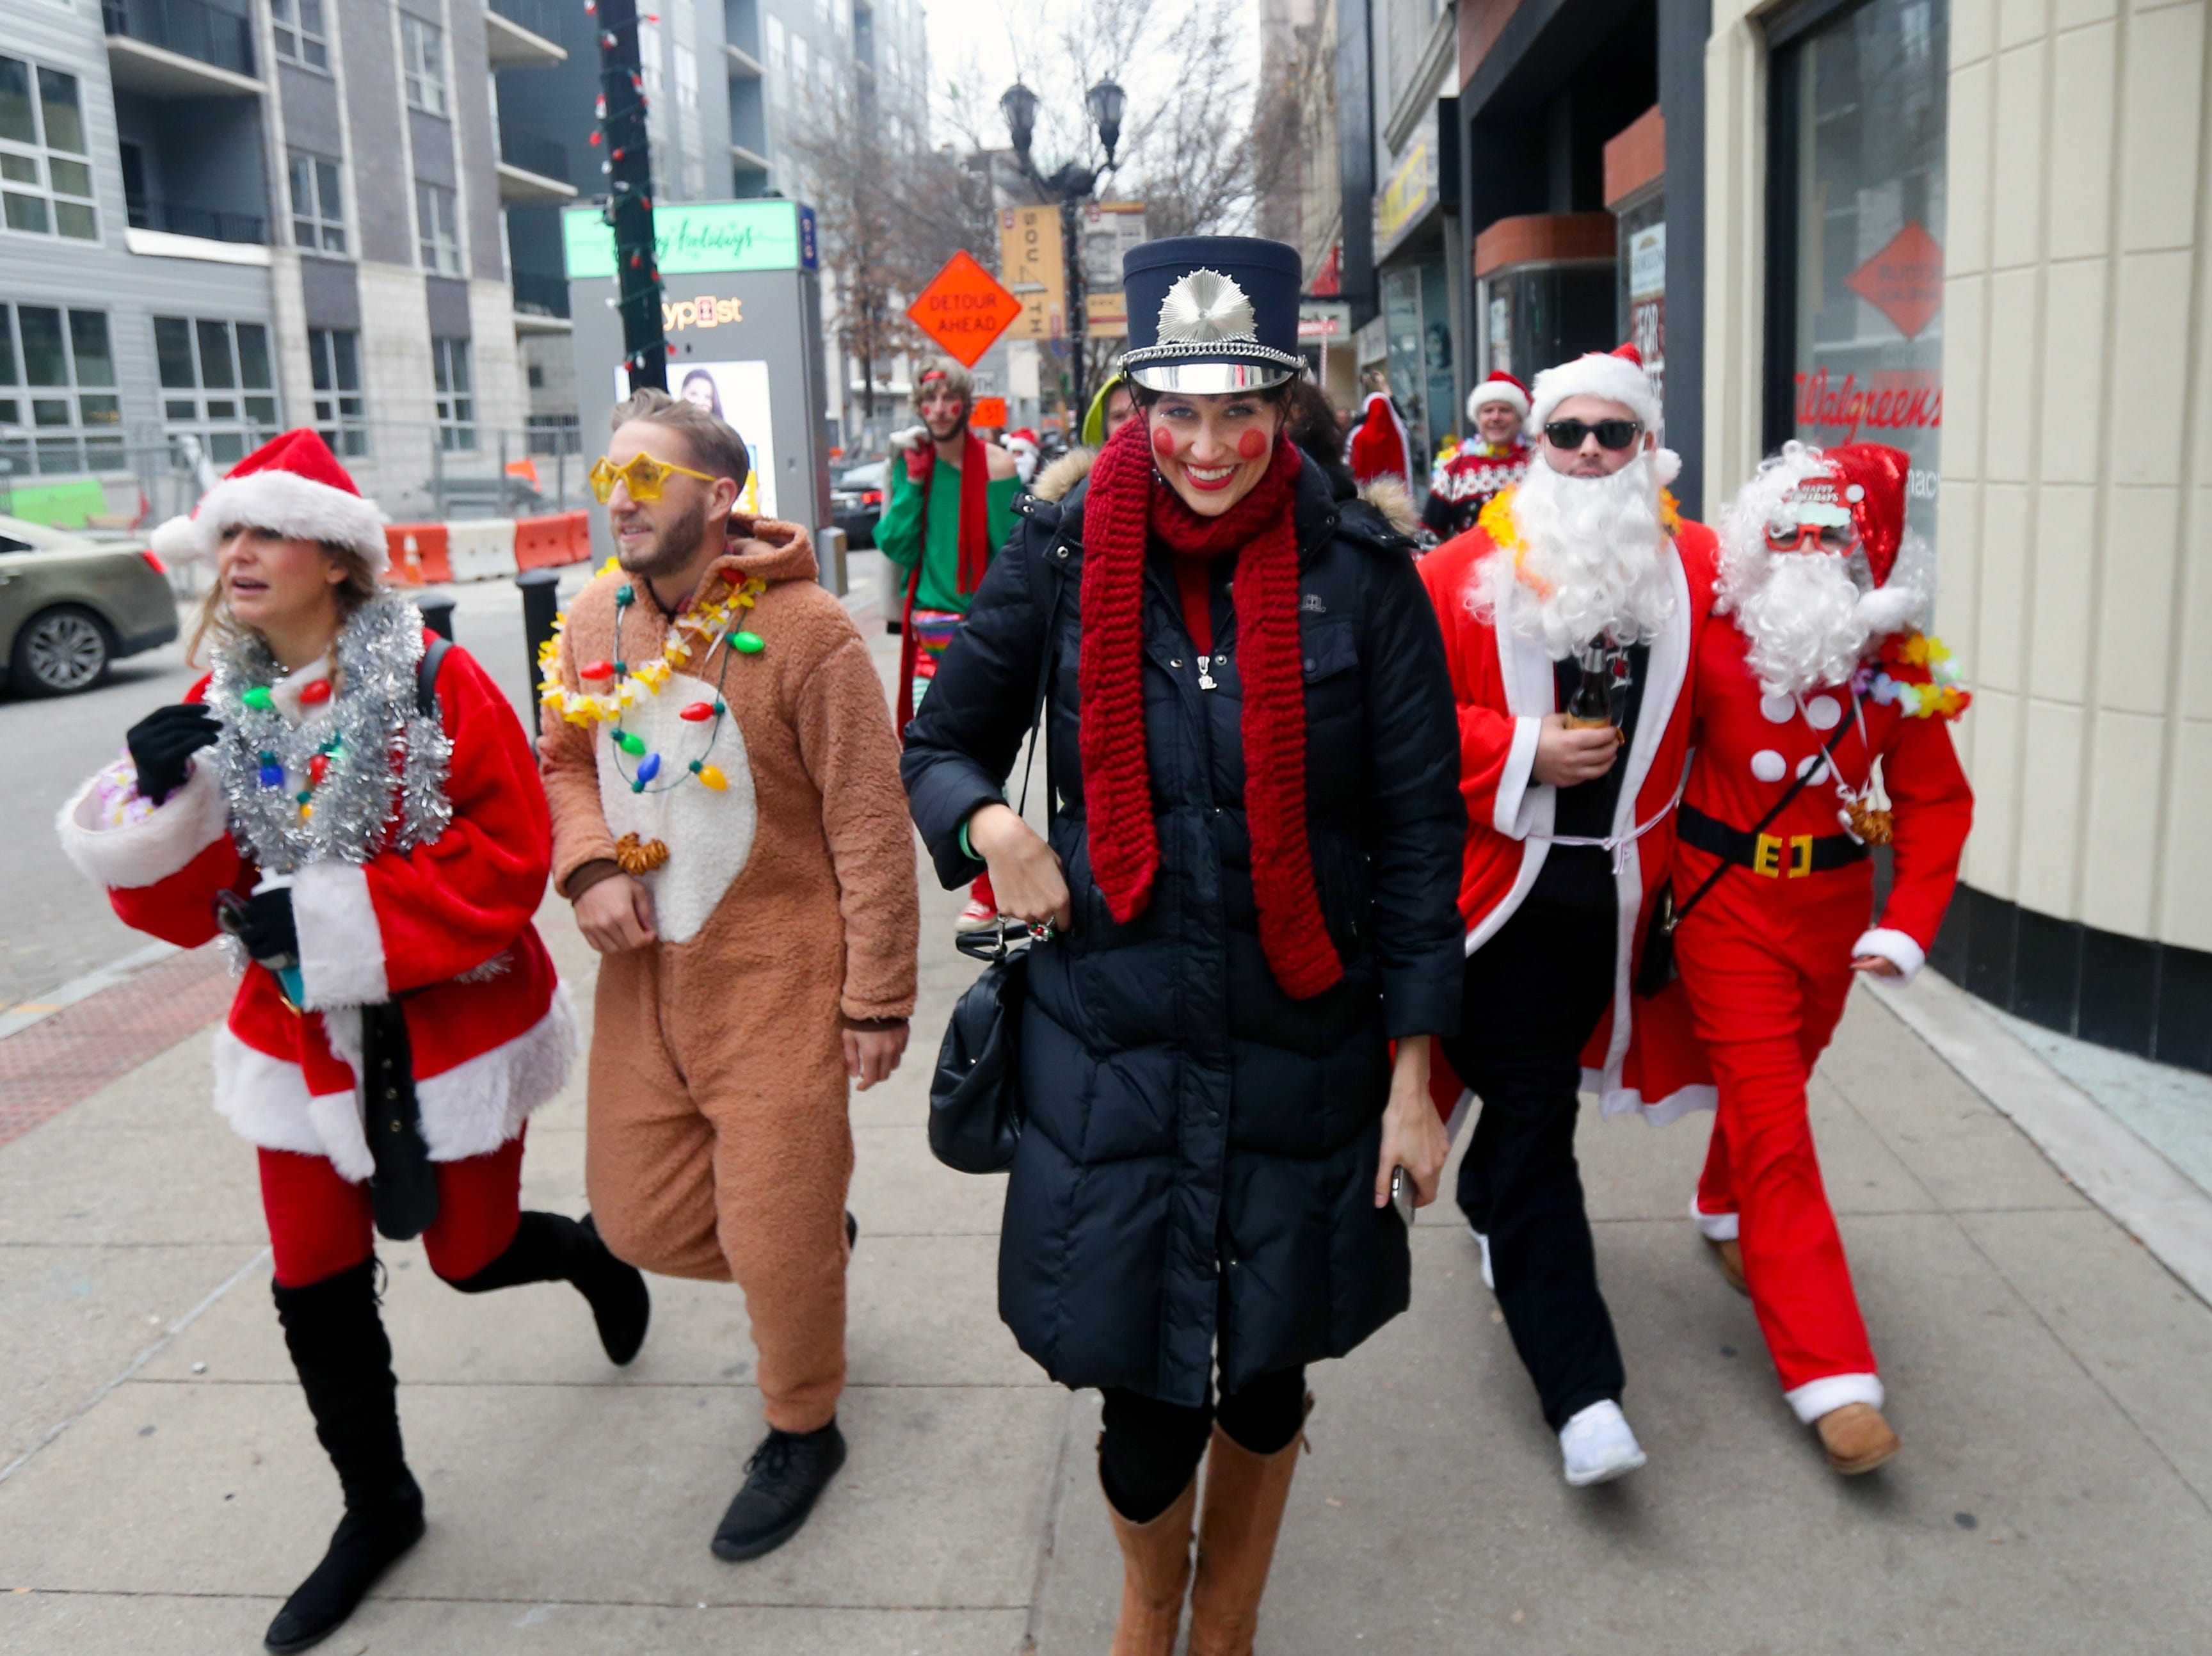 Marge Royston leads a part of the Louisville'e SantaCon crowd to the next location. Dec. 8, 2018